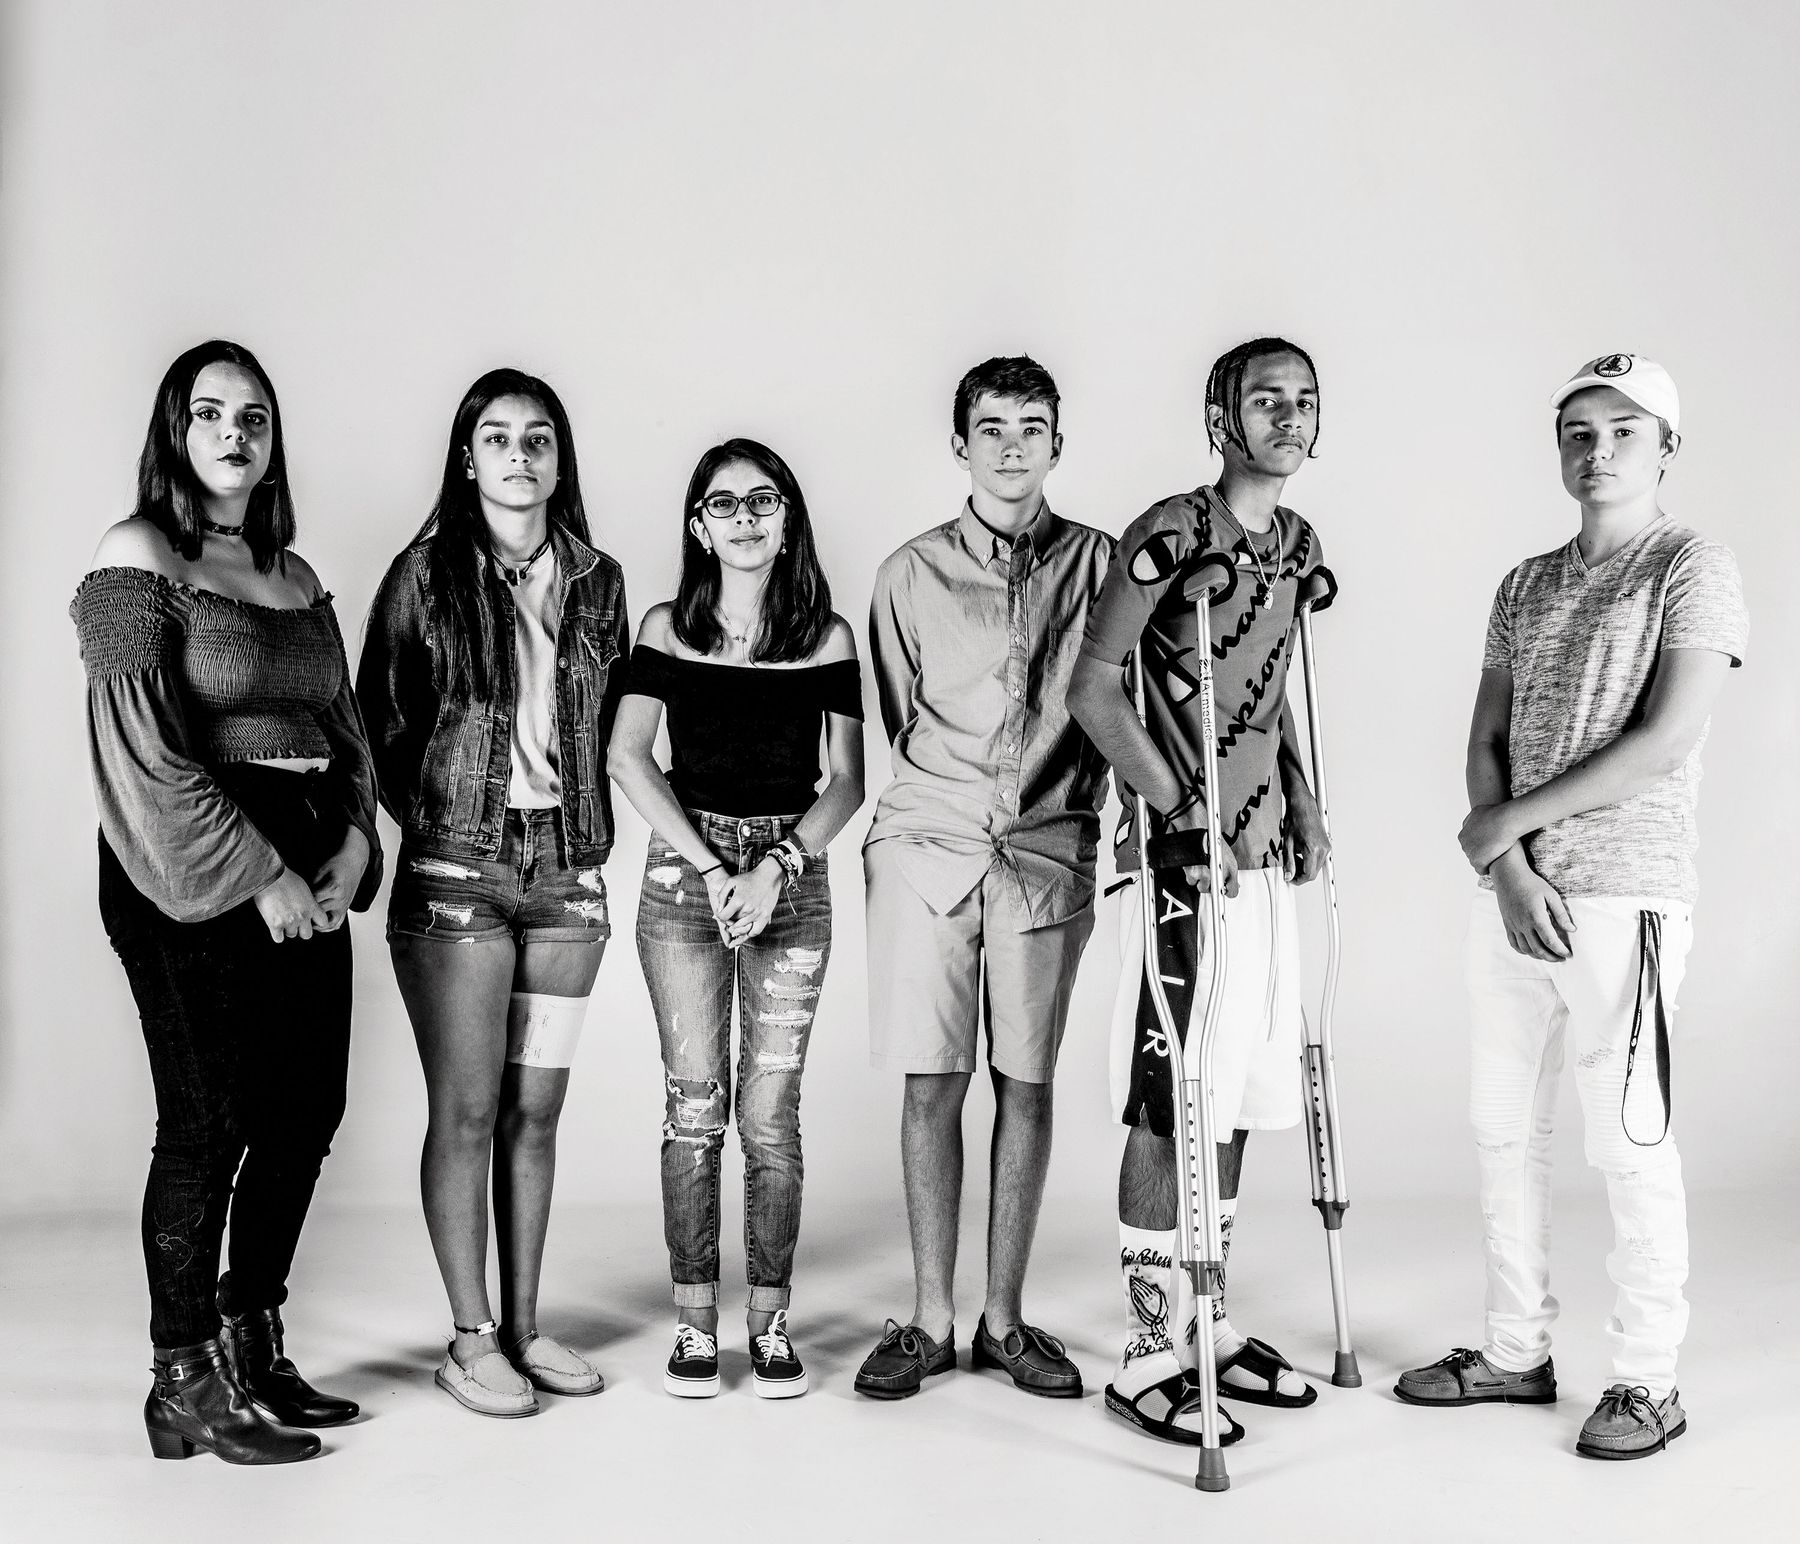 School-Shooting Survivors Bear Their Scars, and Bear Witness